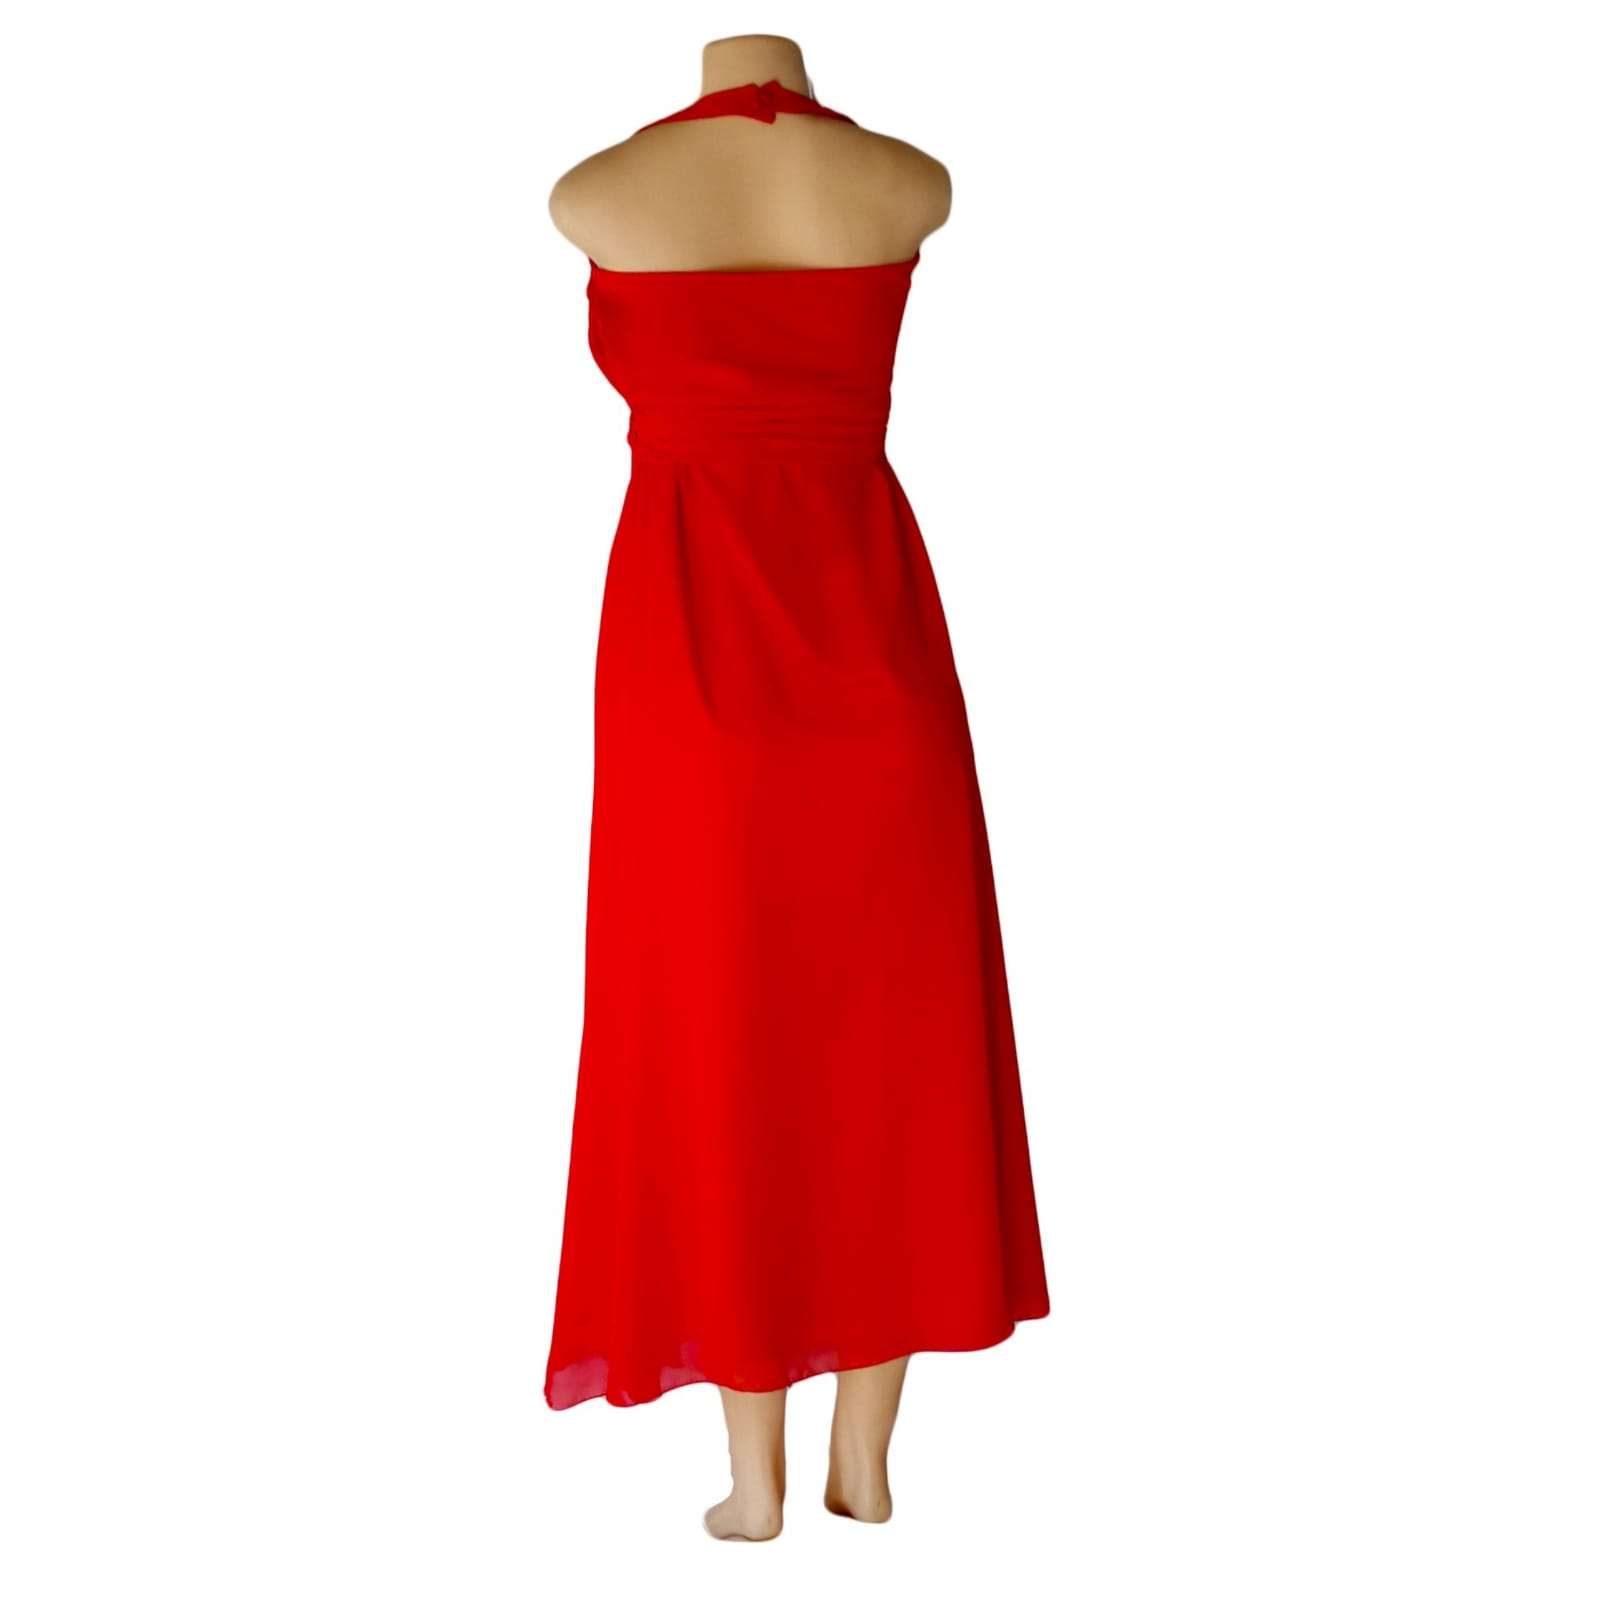 Bright red halter neck evening dress 3 bright red halter neck evening dress with a satin and chiffon crossed layer creating a double slit. A ruched belt